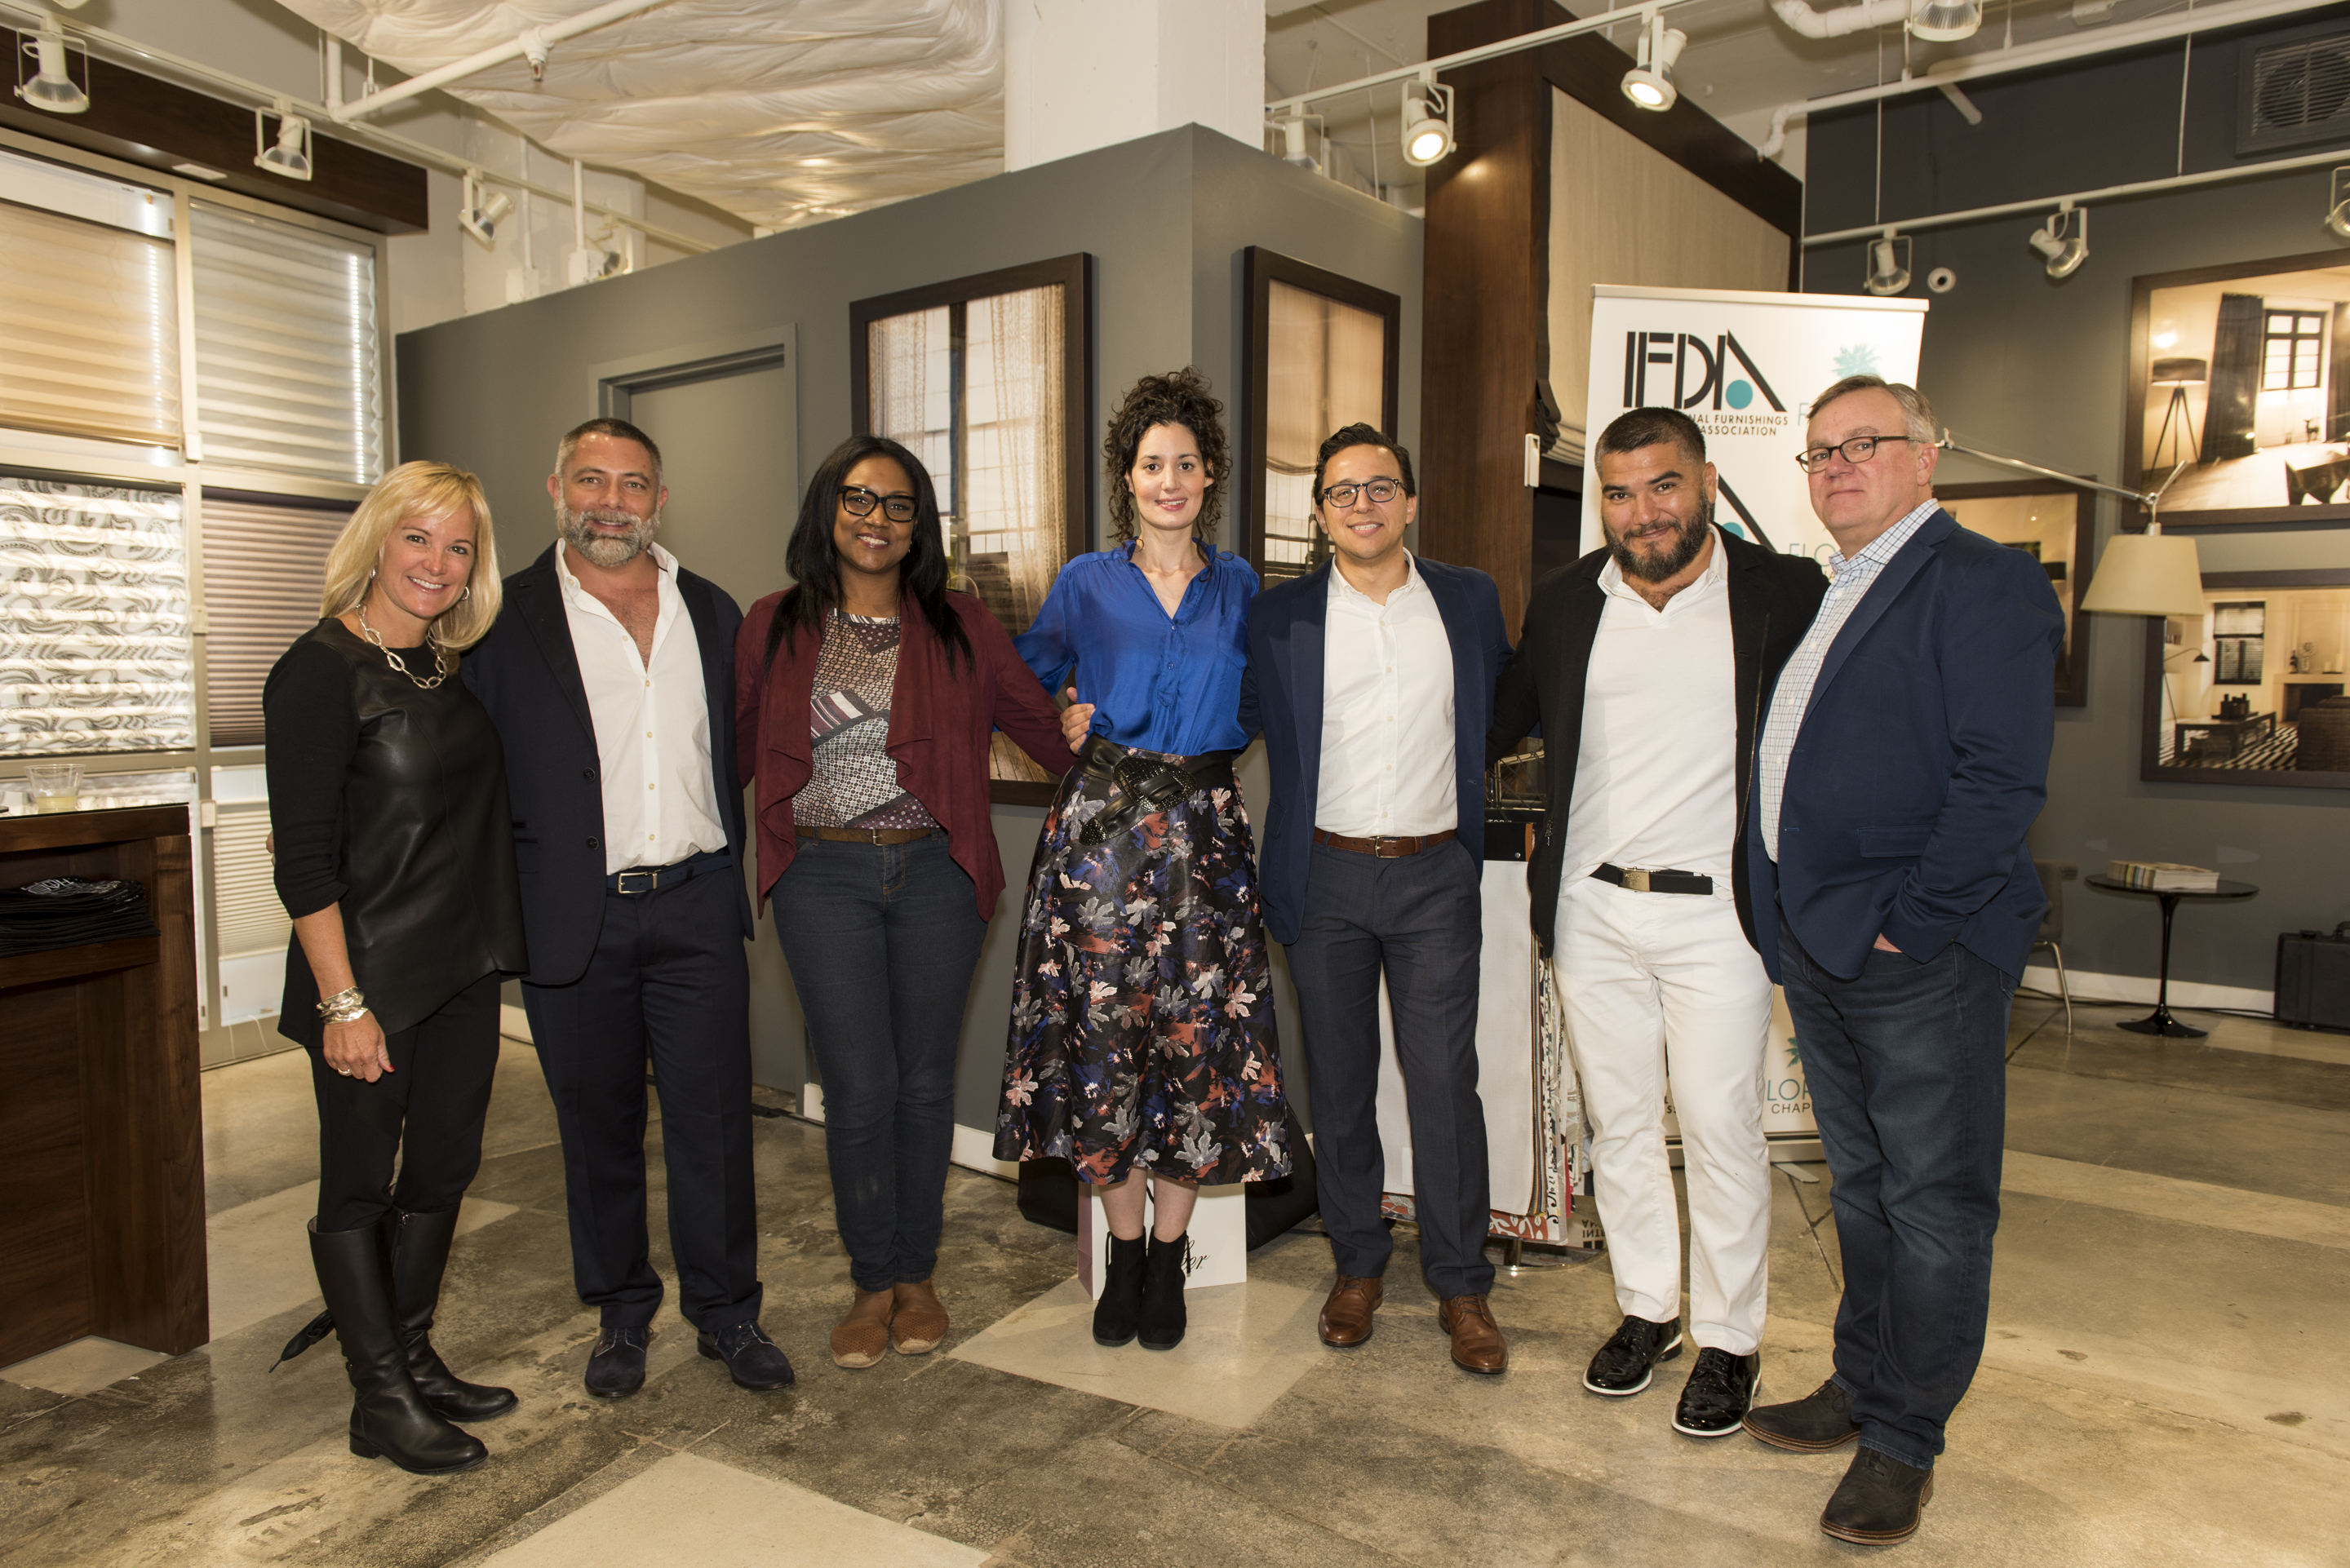 Allison Paladino, David Charette, Judy Henry, Arianne Nardo, Anthony Paulino, Jay Britto and Michael Crotty, CMO of The Shade Store